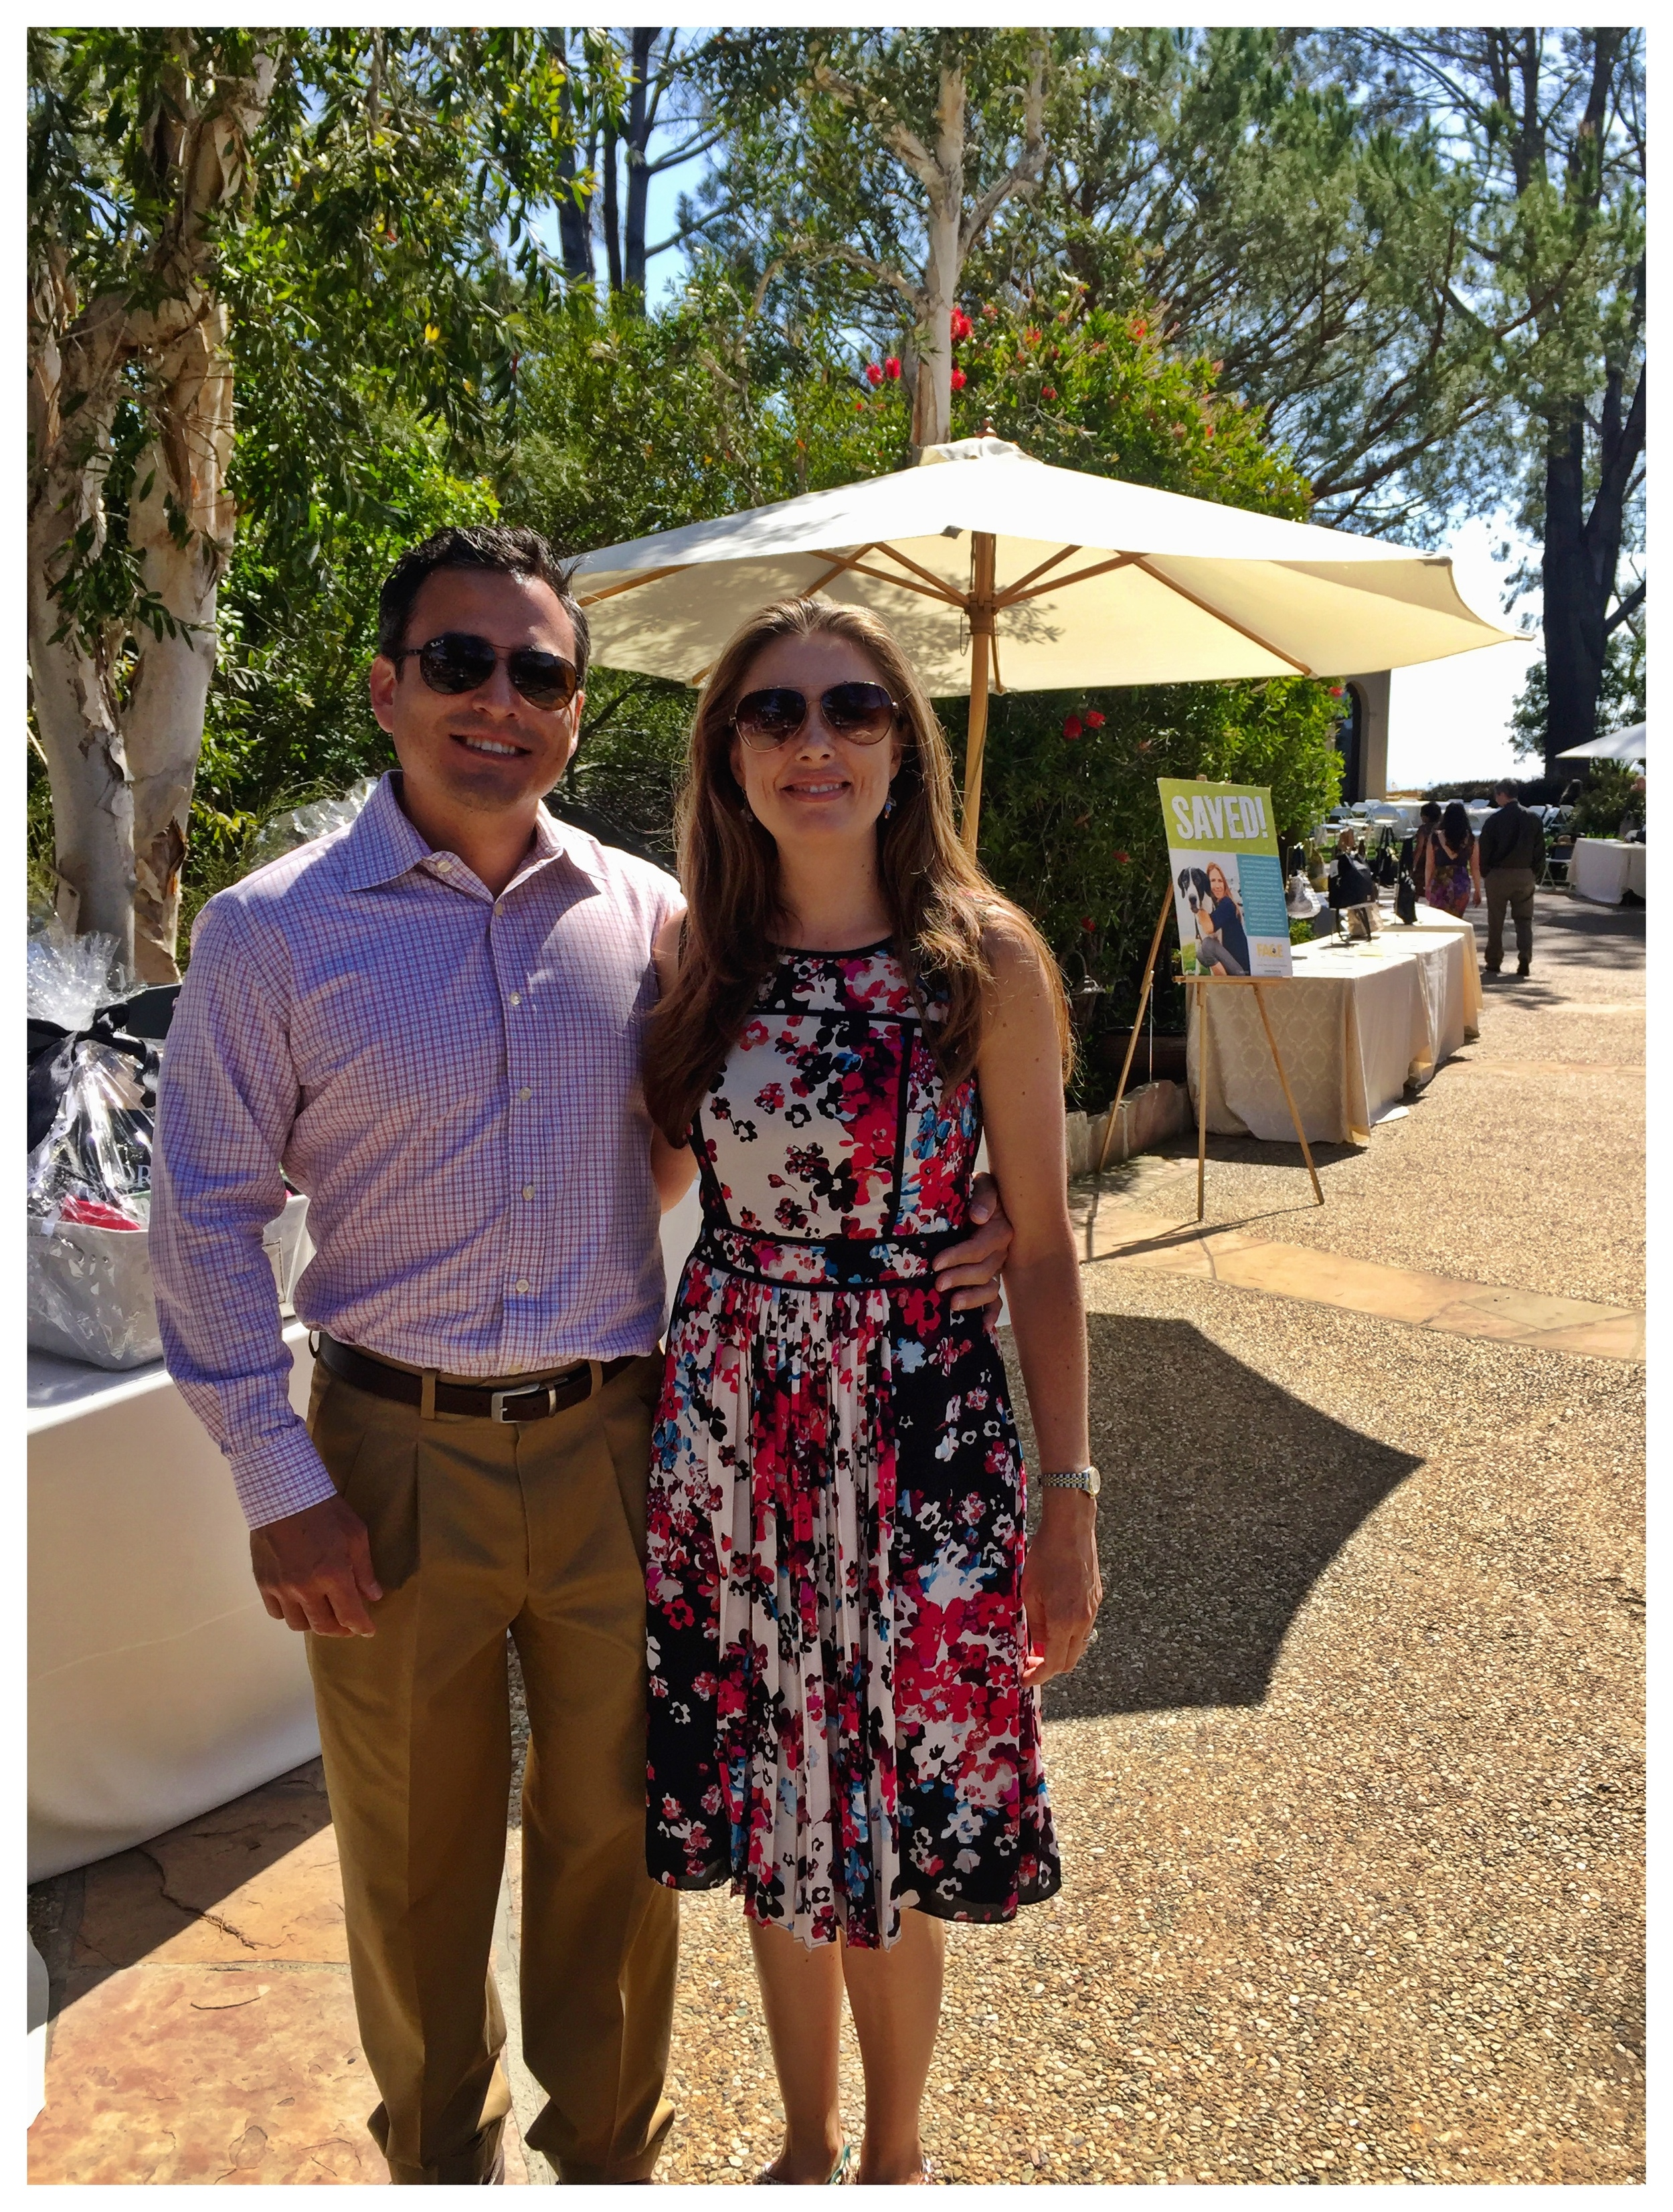 Sirius K. Yoo, M.D. and Amber at the 6th annual Bags & Baubles fundraiser for the FACE Foundation, held in Rancho Santa Fe.